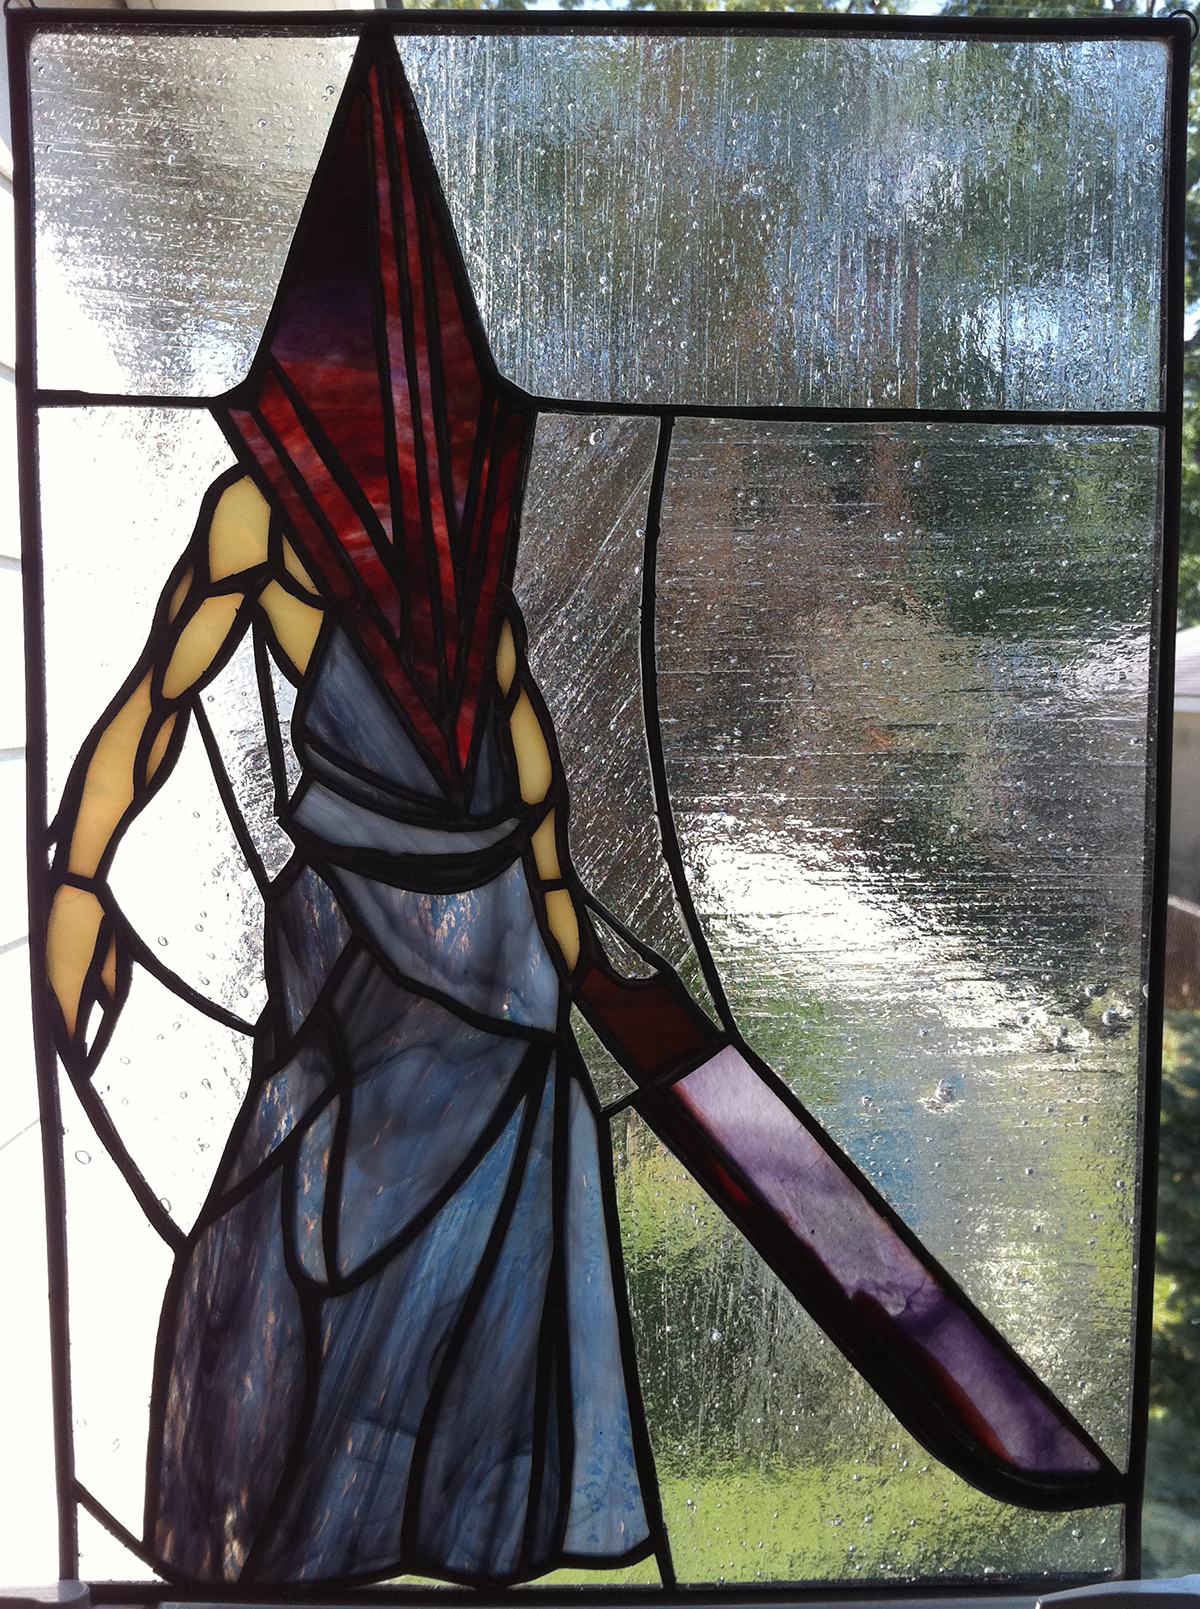 Random Cool This Video Game Themed Stained Glass Would